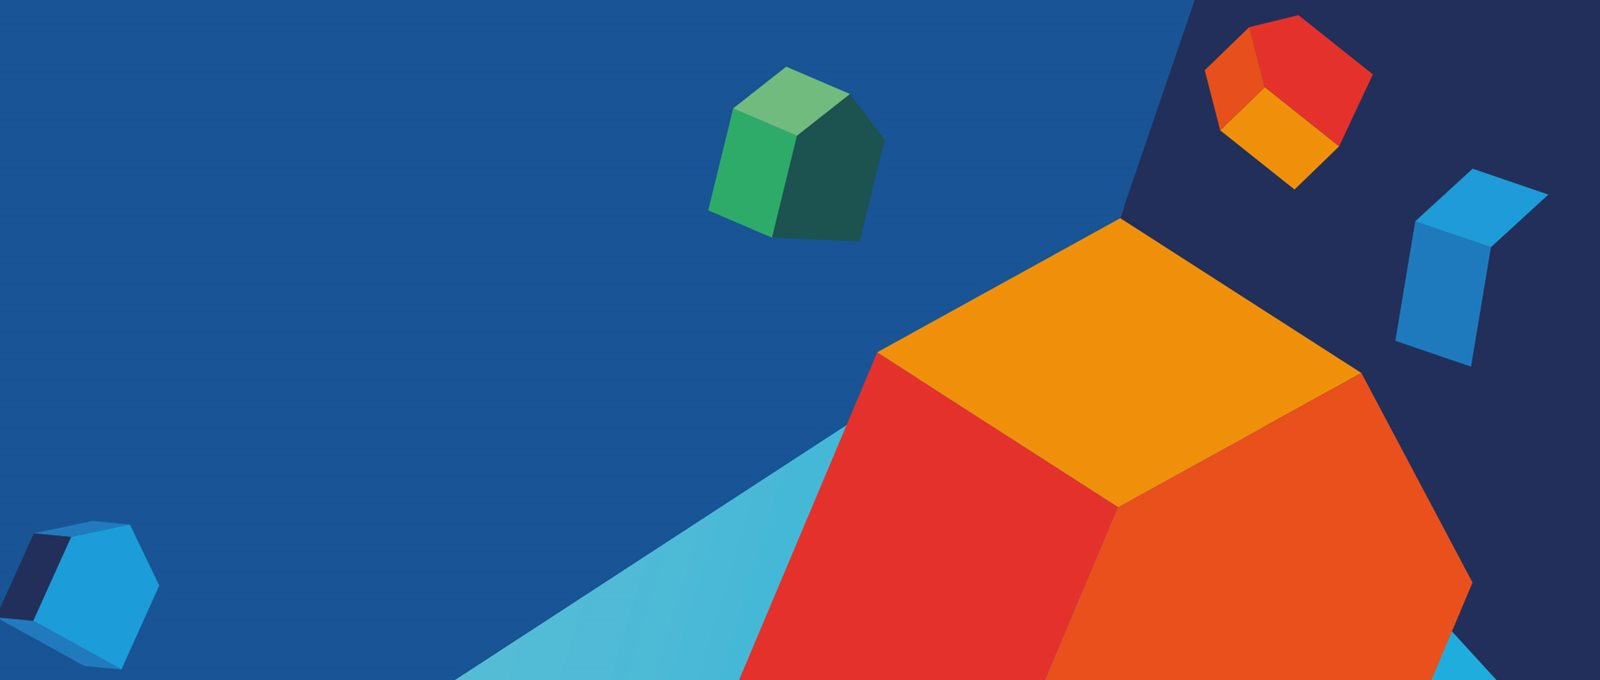 A stack of house-shaped 3D blocks in front of a multicoloured blue background